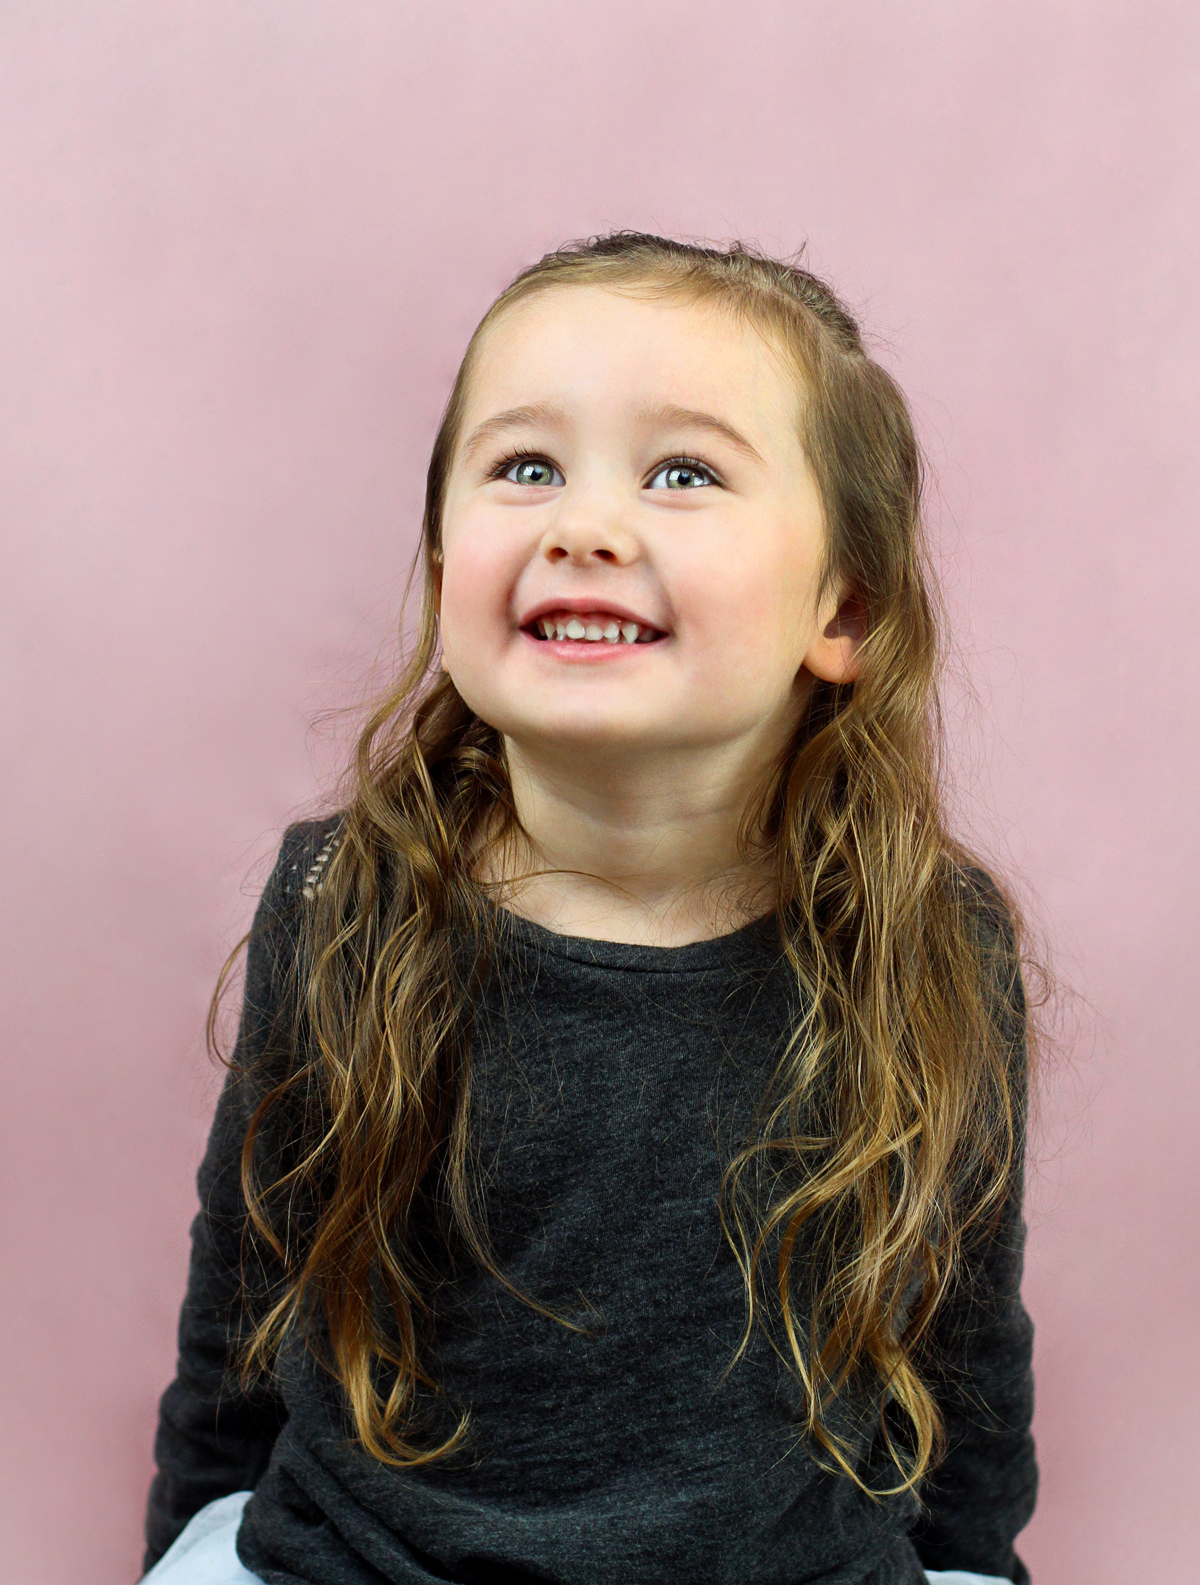 Toddler Girl Smiling